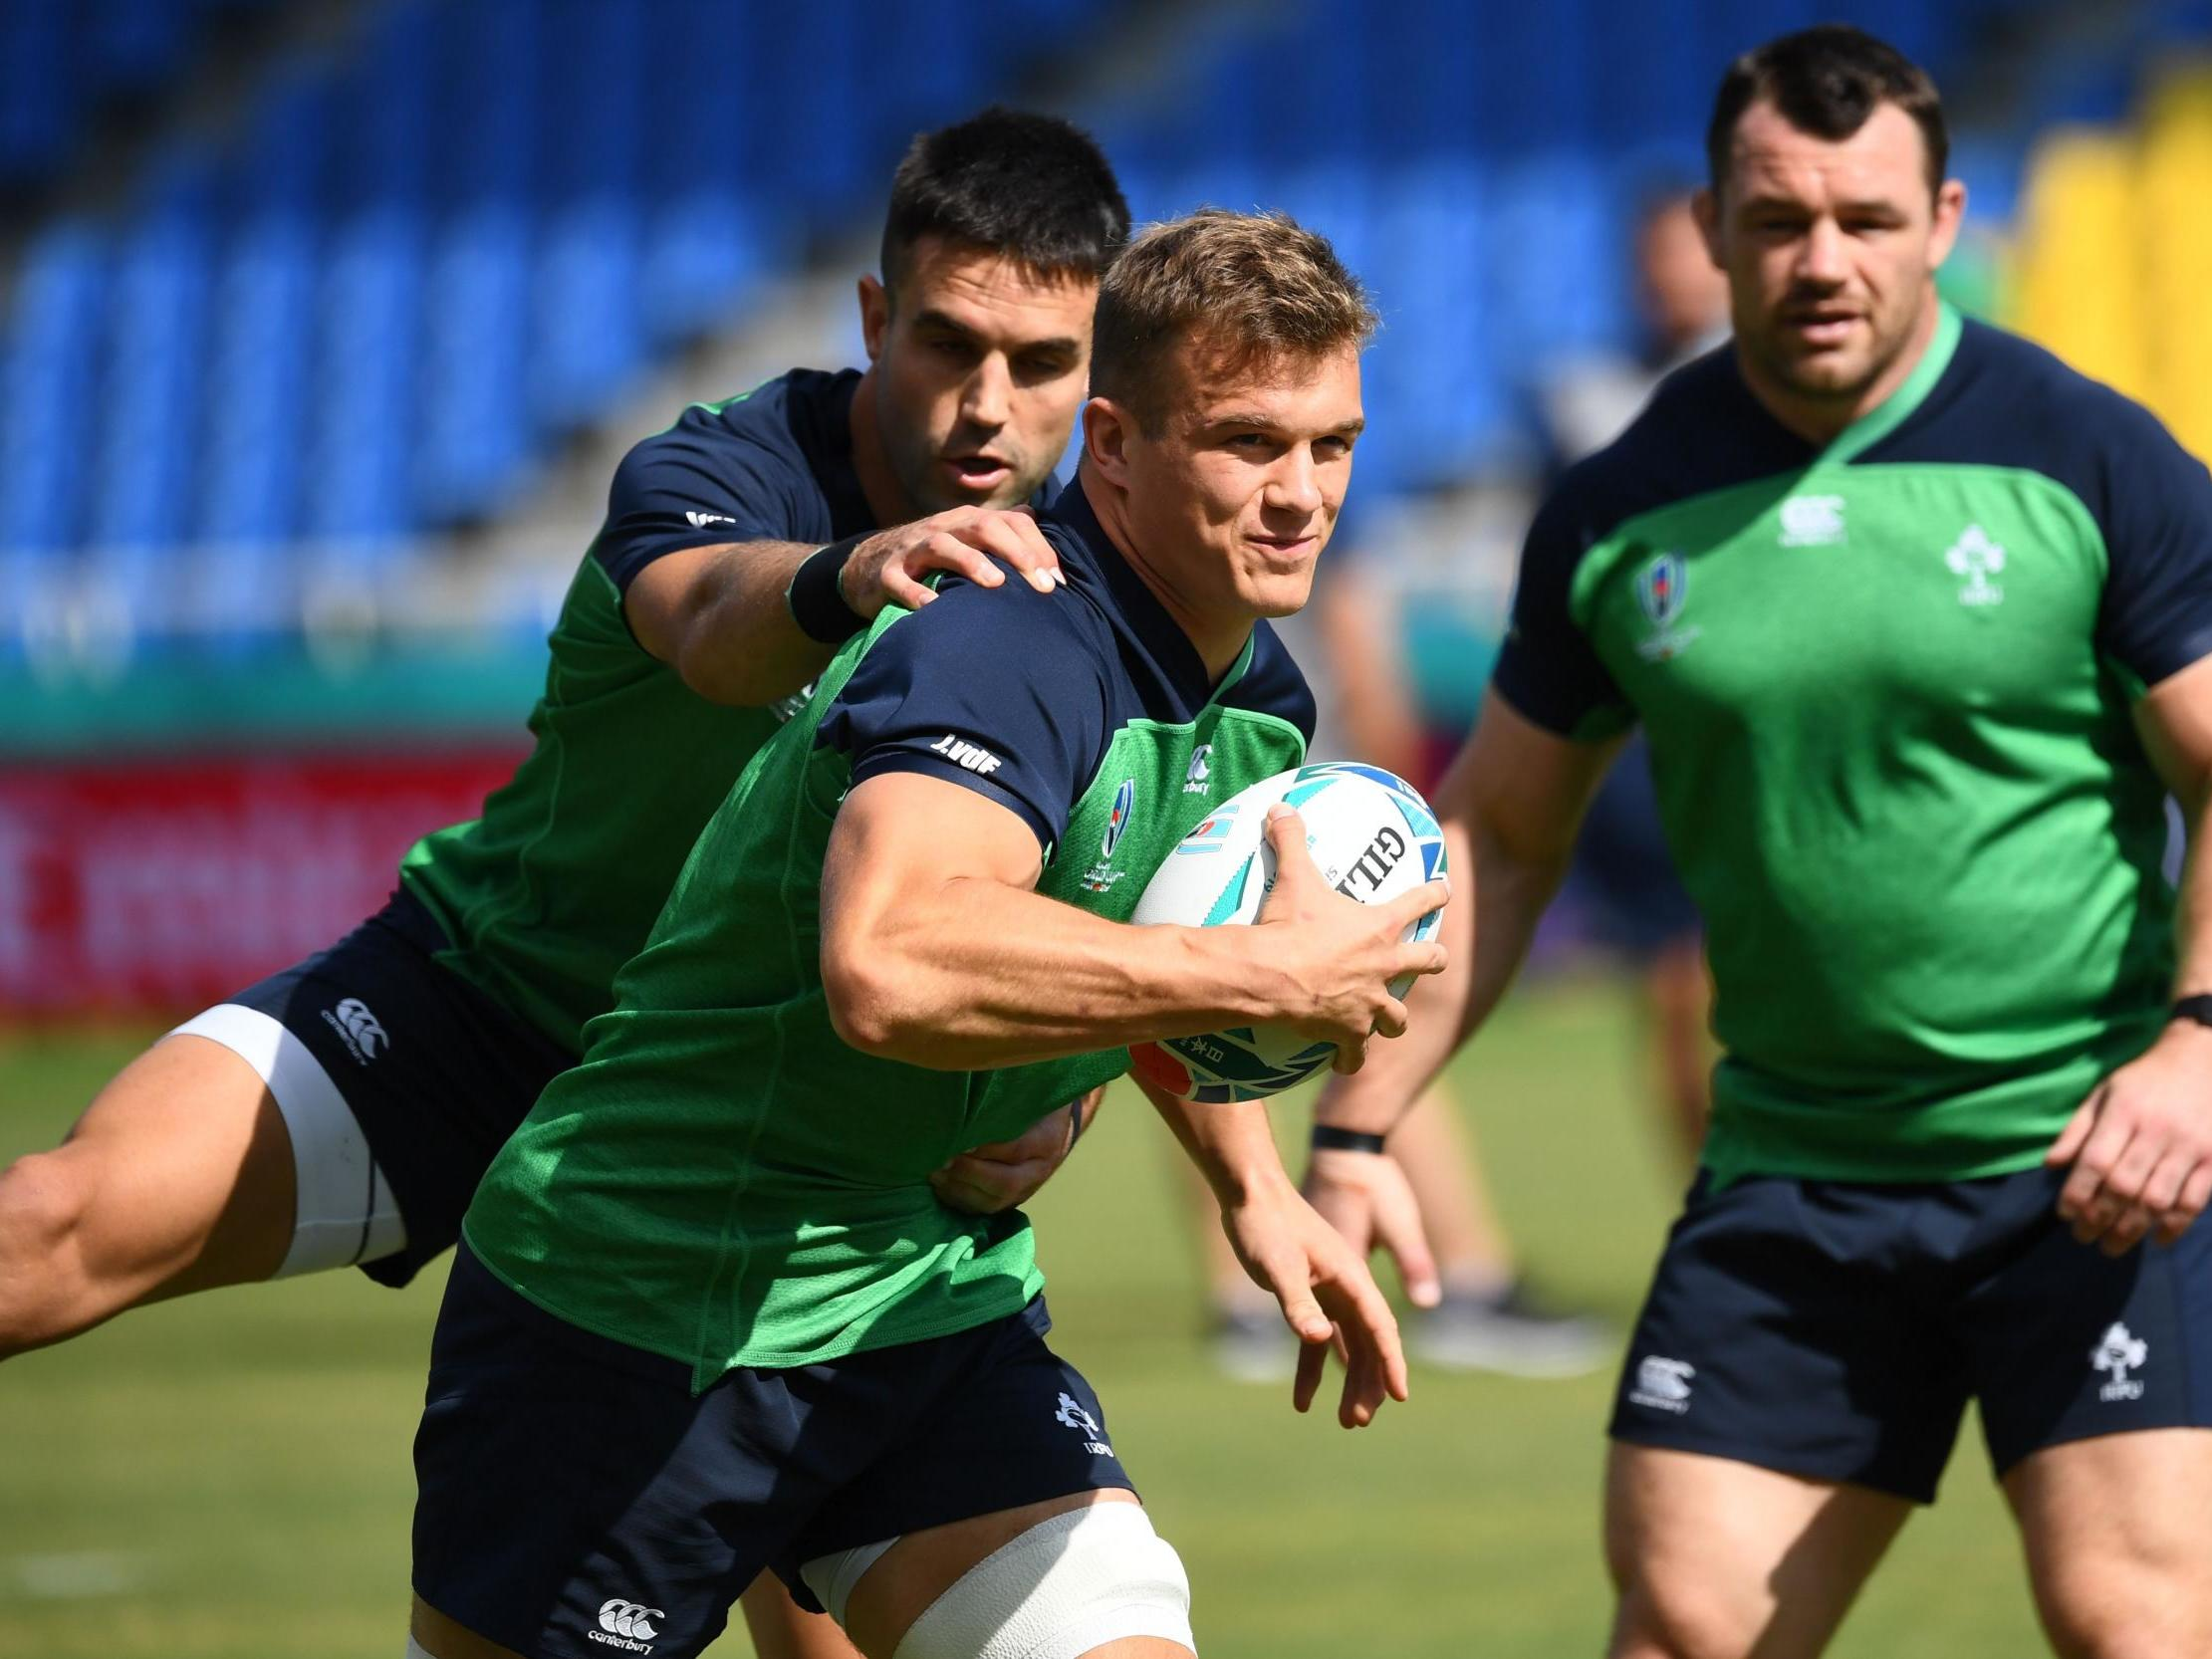 Rugby World Cup 2019, Ireland vs Samoa: Kick-off time, what time does it start and team news